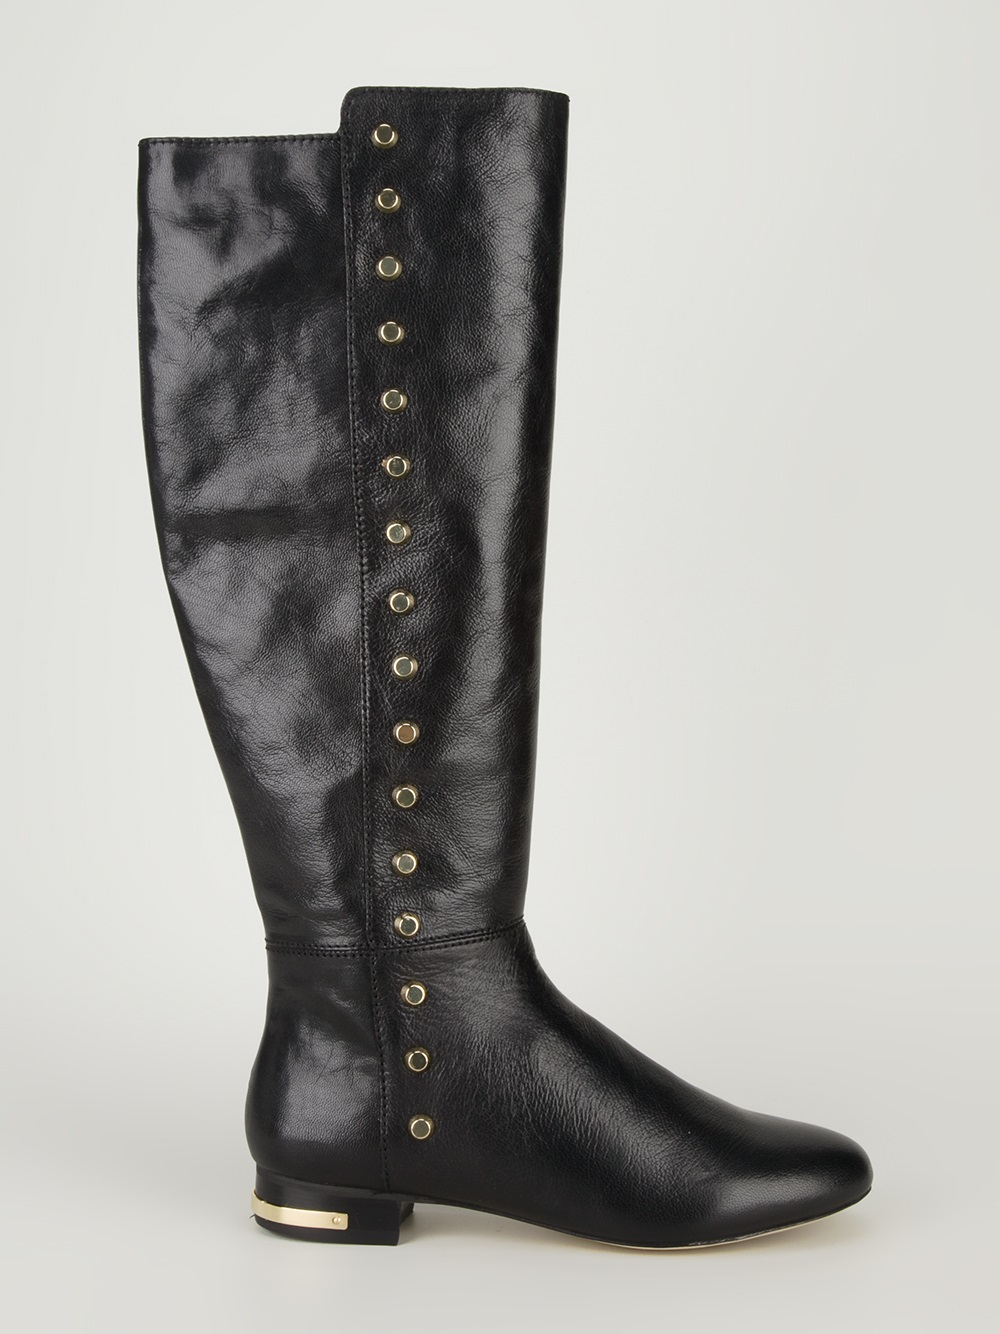 Michael Kors Studded Riding Boot In Black Lyst